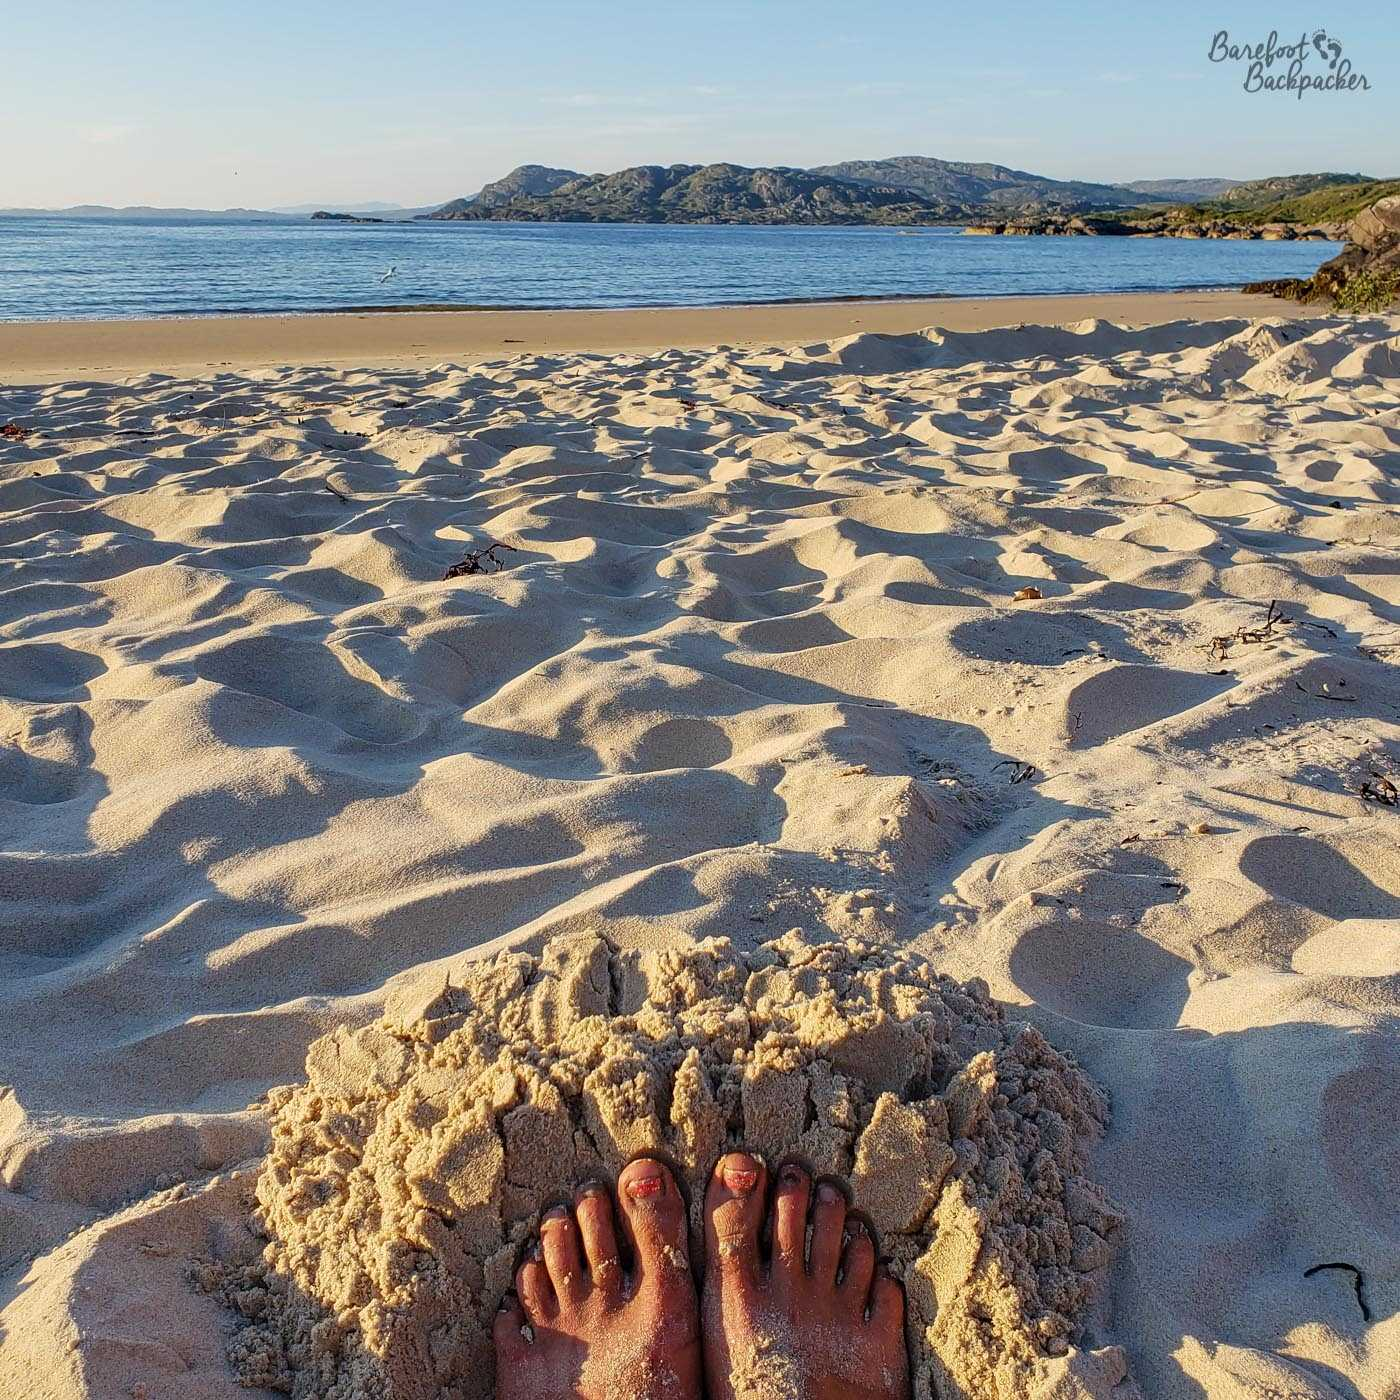 Sandy toes with red nail varnish are pushed against a small bank of sand in a hollow. The sand stretches out above until the sea, the rocks behind, and the blue sky are visible. The sun is shining on the feet and the sand, brightening everything in the mid-evening.